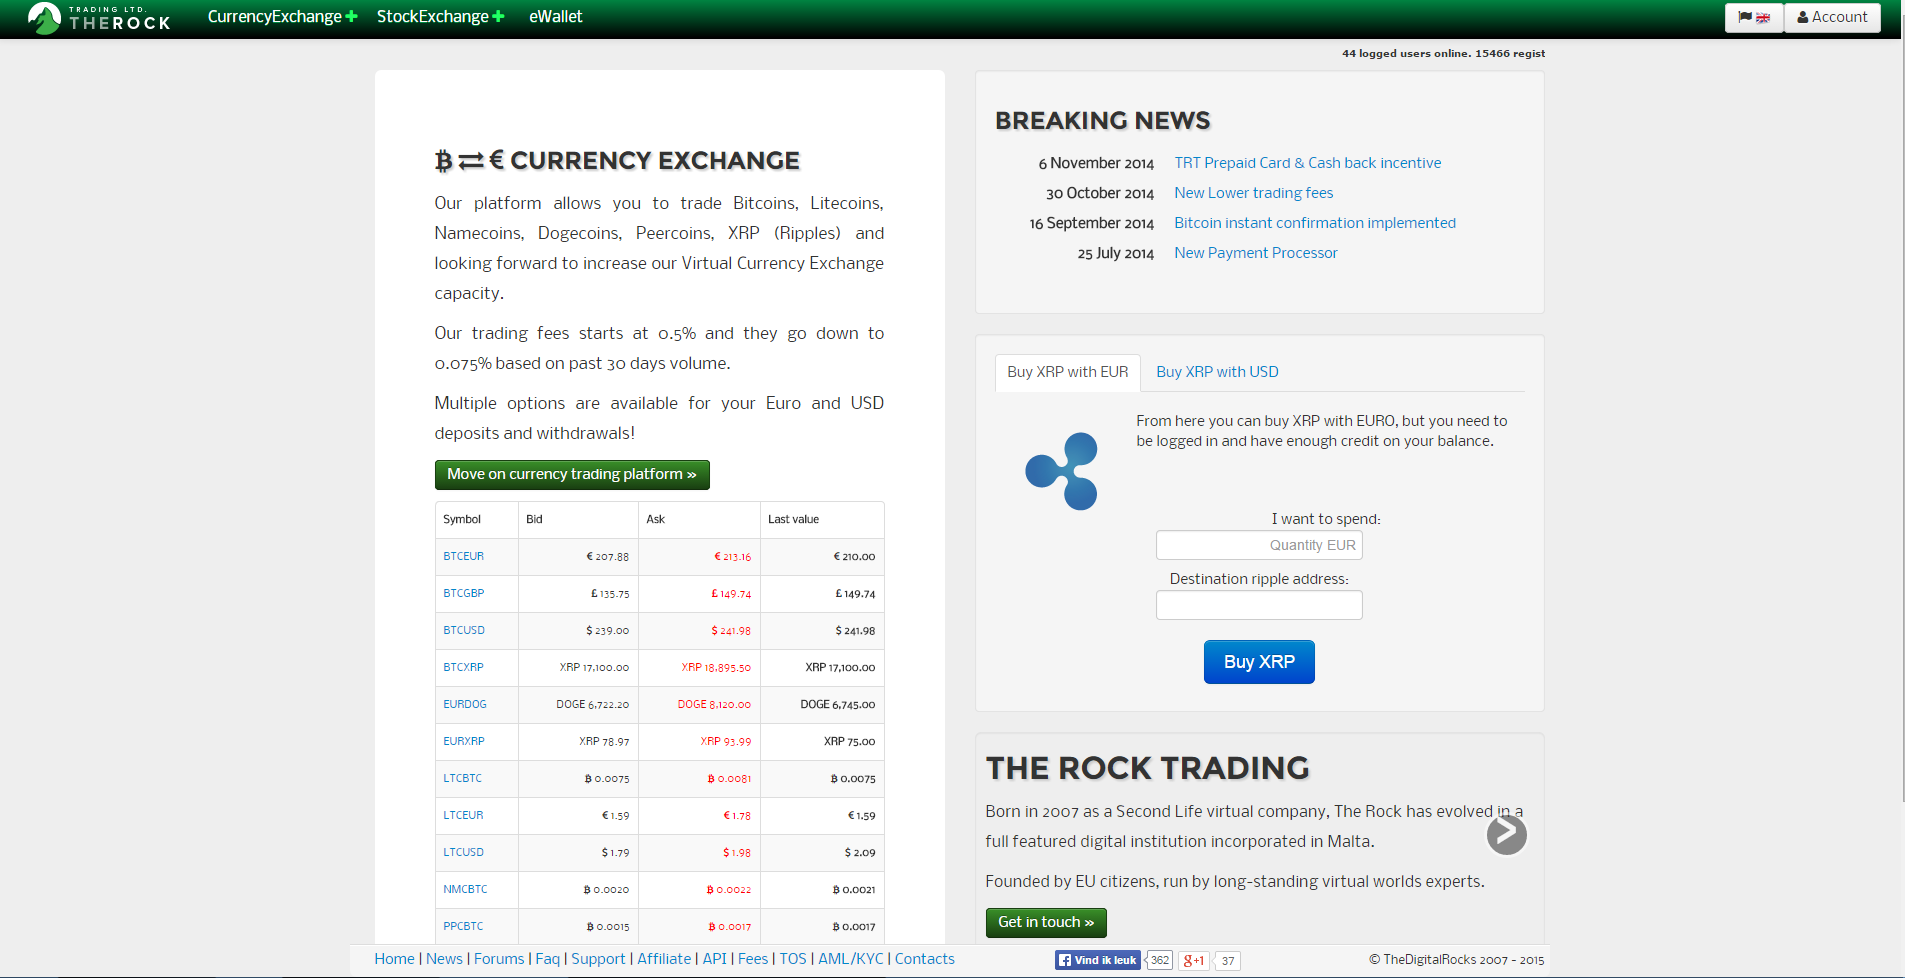 Buy and sell on The Rock Trading